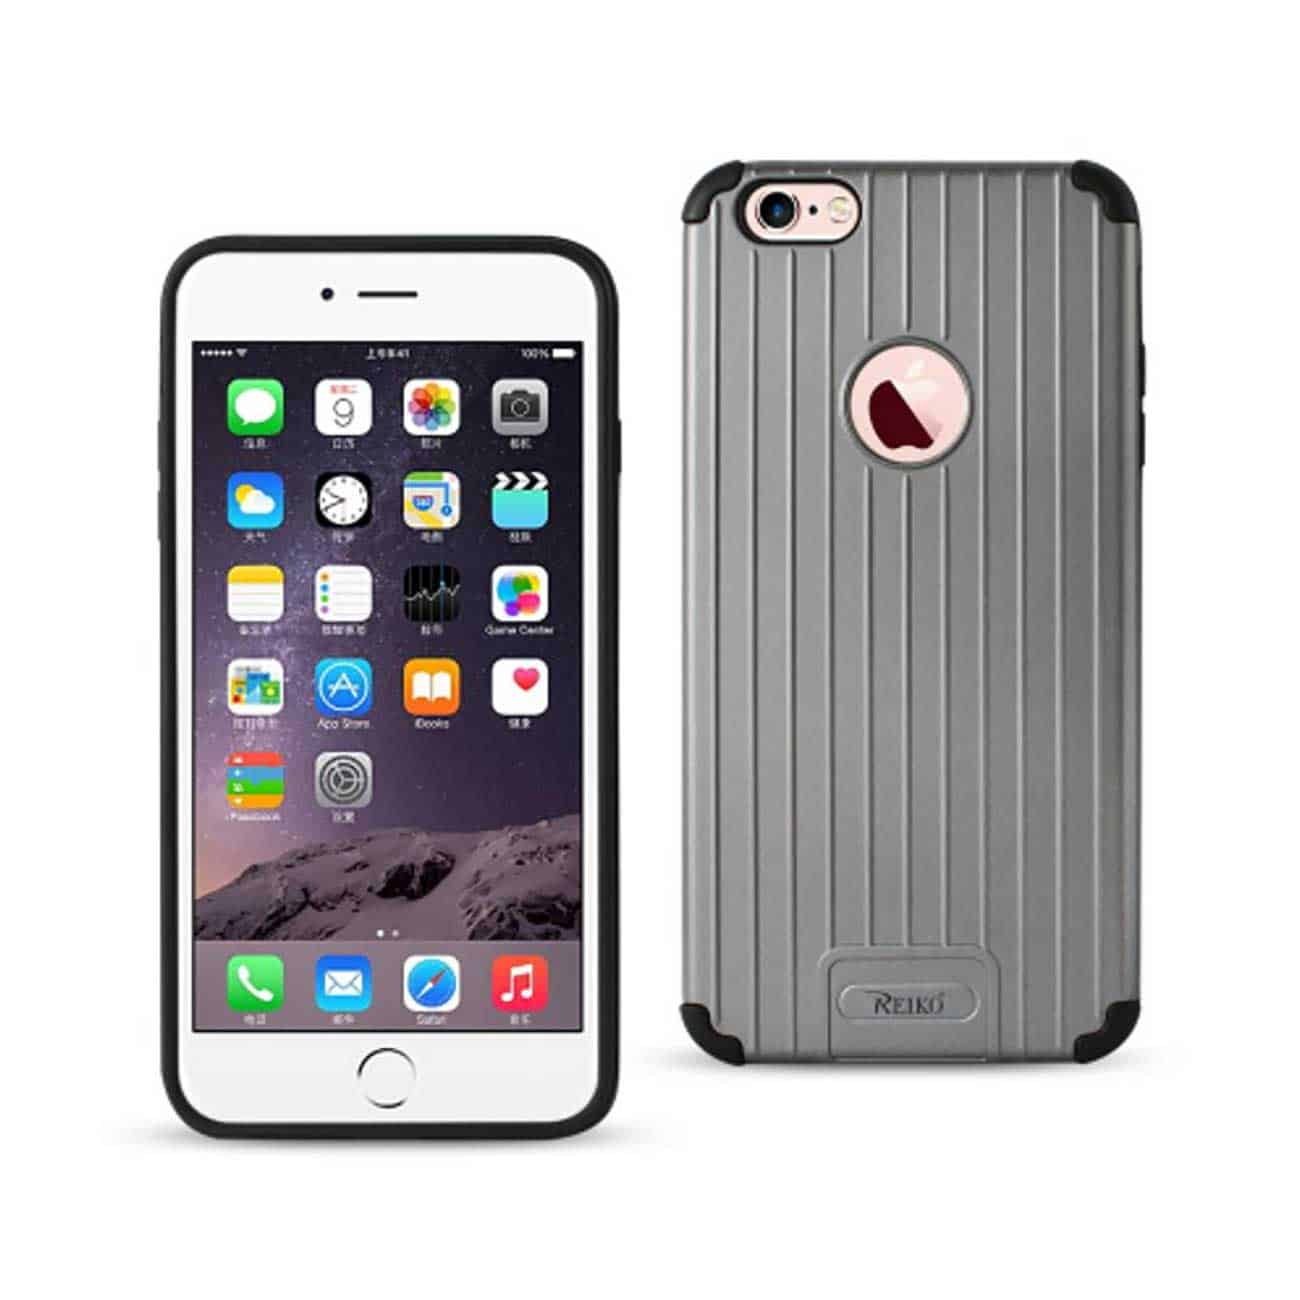 IPHONE 6 PLUS/ 6S PLUS RUGGED METAL TEXTURE HYBRID CASE WITH RIDGED BACK IN BLACK GRAY